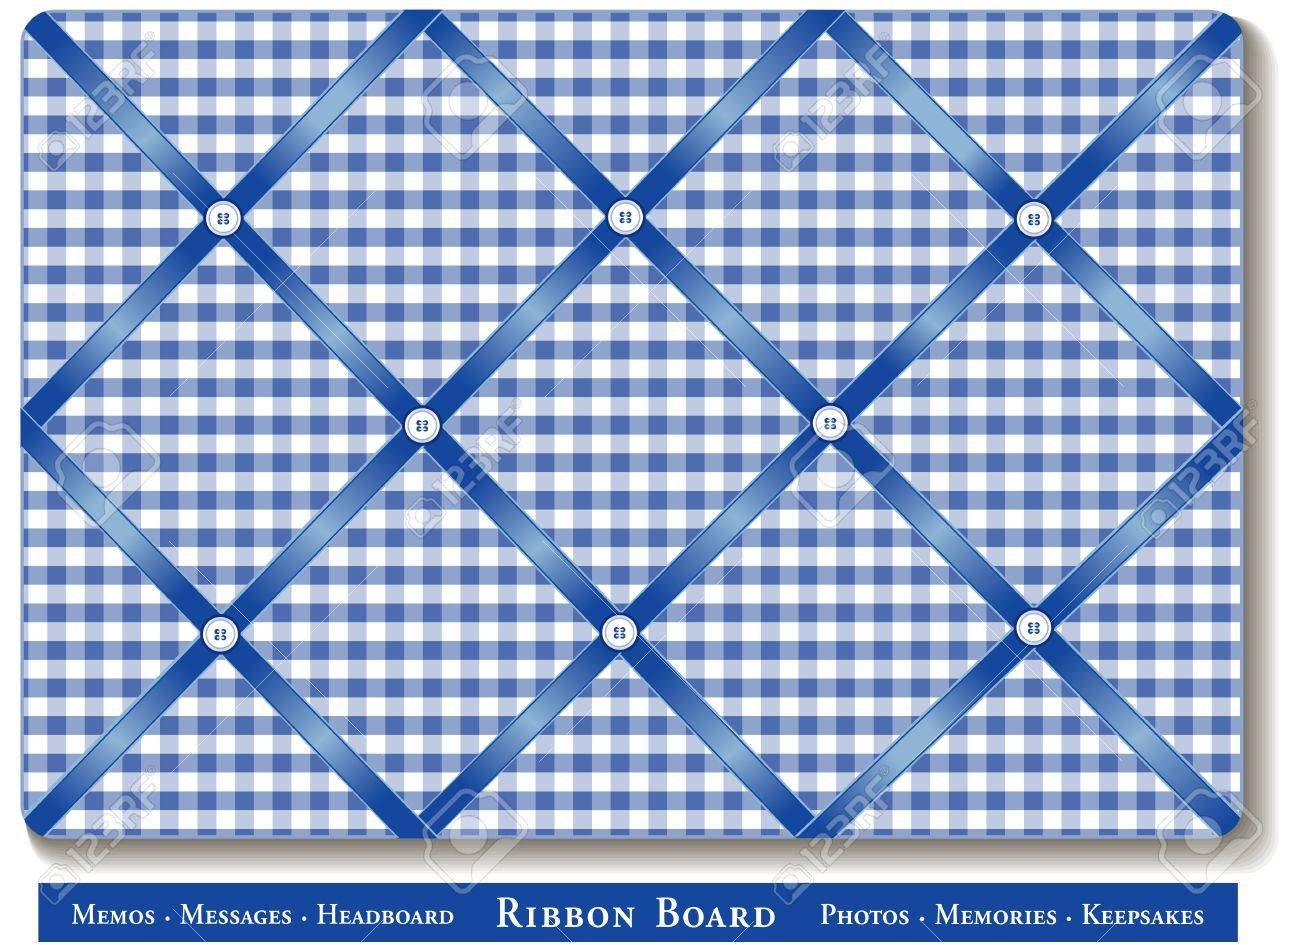 Ribbon Bulletin Board Blue Satin Ribbons On Gingham Check French